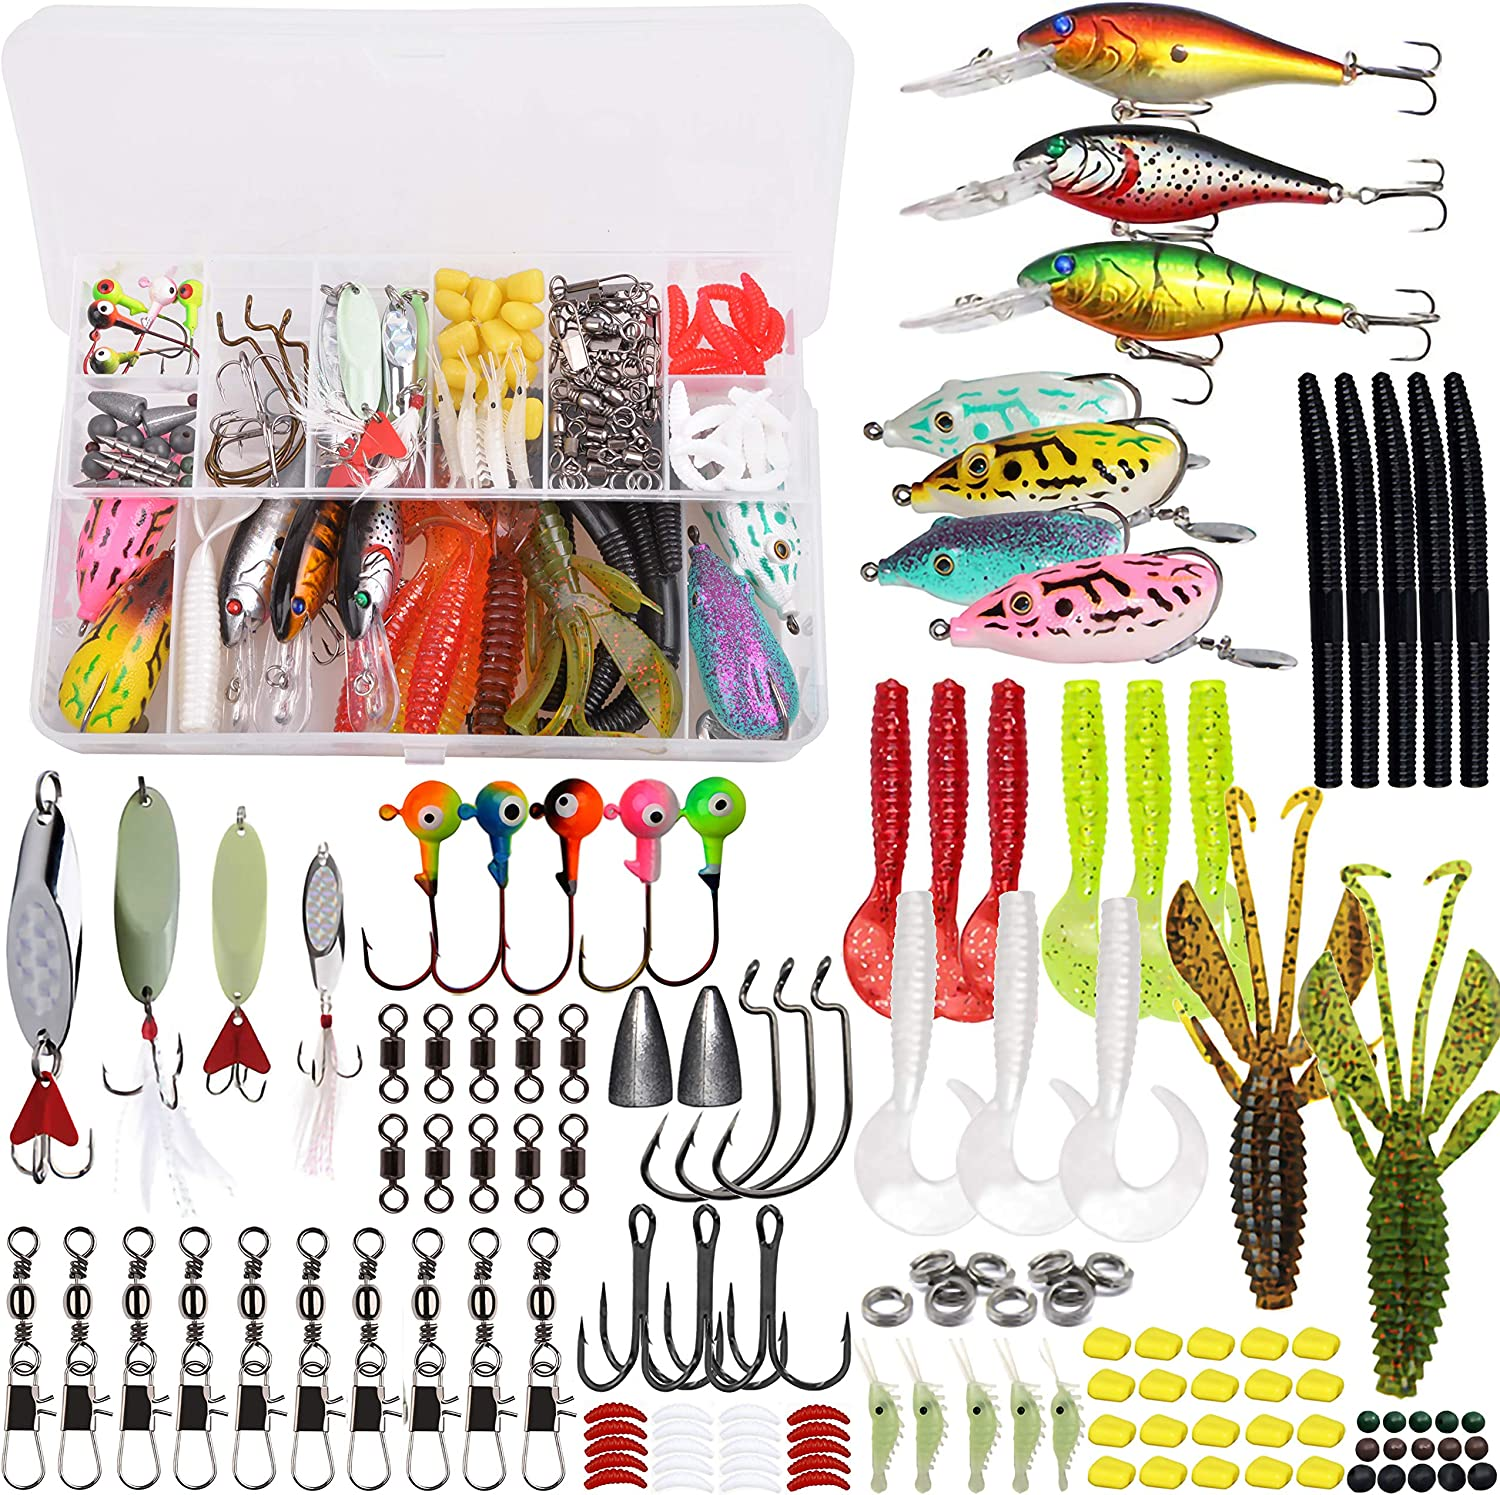 4 Pieces Fishing Lures Crankbaits Hooks Minnow Artificial Baits Tackle